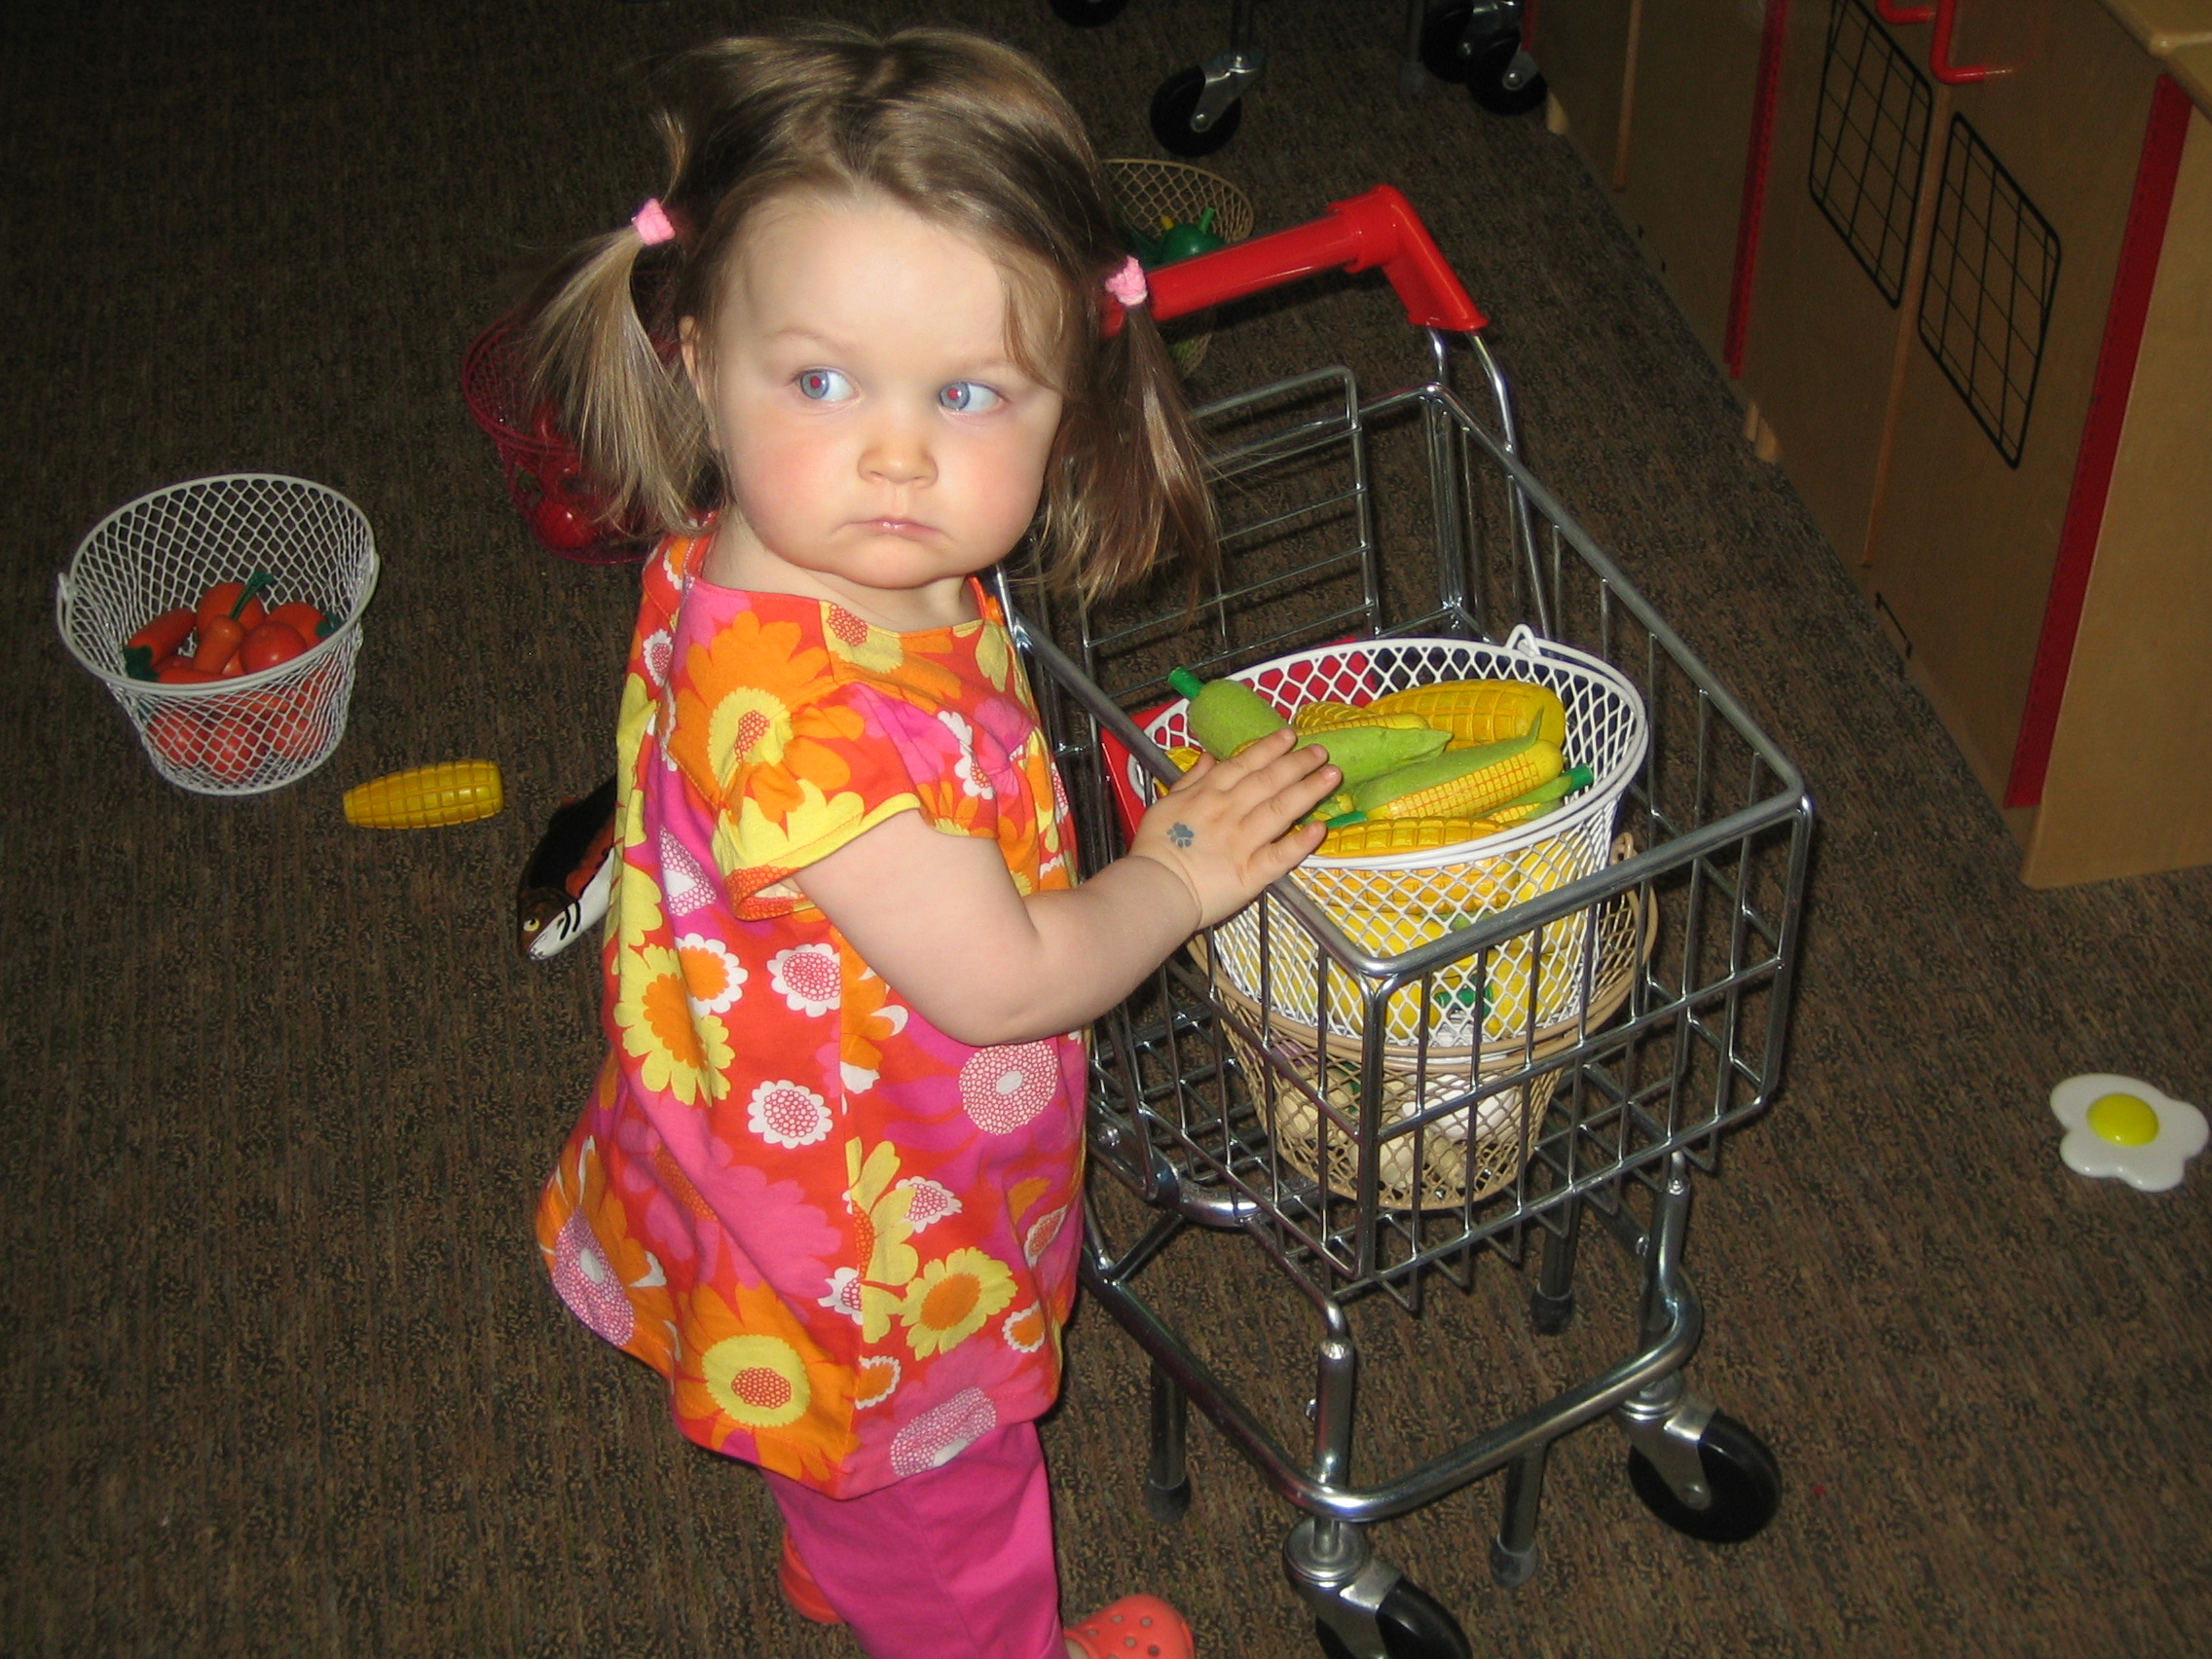 Gig pushing a child-size shopping cart.